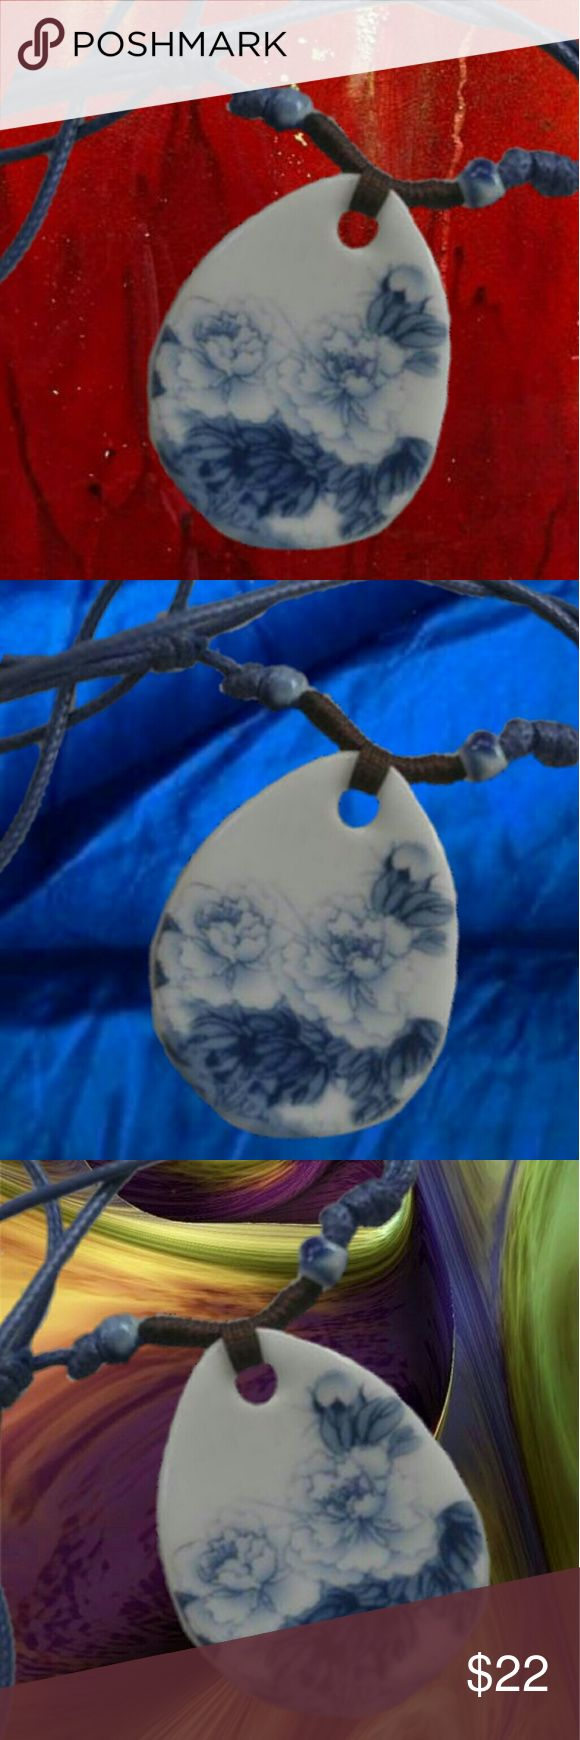 Blue & White FlowersPorcelain Ceramic Pendant Nec Blue & White FlowersPorcelain Ceramic Pendant Necklace – Hand Painted  .  100% Handmade Porcelain Ceramic Pendant Necklace. Brand new and high quality each necklace is unique as it is handmade!  .  Colors: Blue & White with Blue Adjustable Cord  Materials: Porcelain/Ceramic Pendant, Ceramic Beads & Waxed Leather Cord Pendant Diameter: approx. 3.5cm  Length: Adjustable  .  Please Note: Color may vary slightly due to the color calibration of…